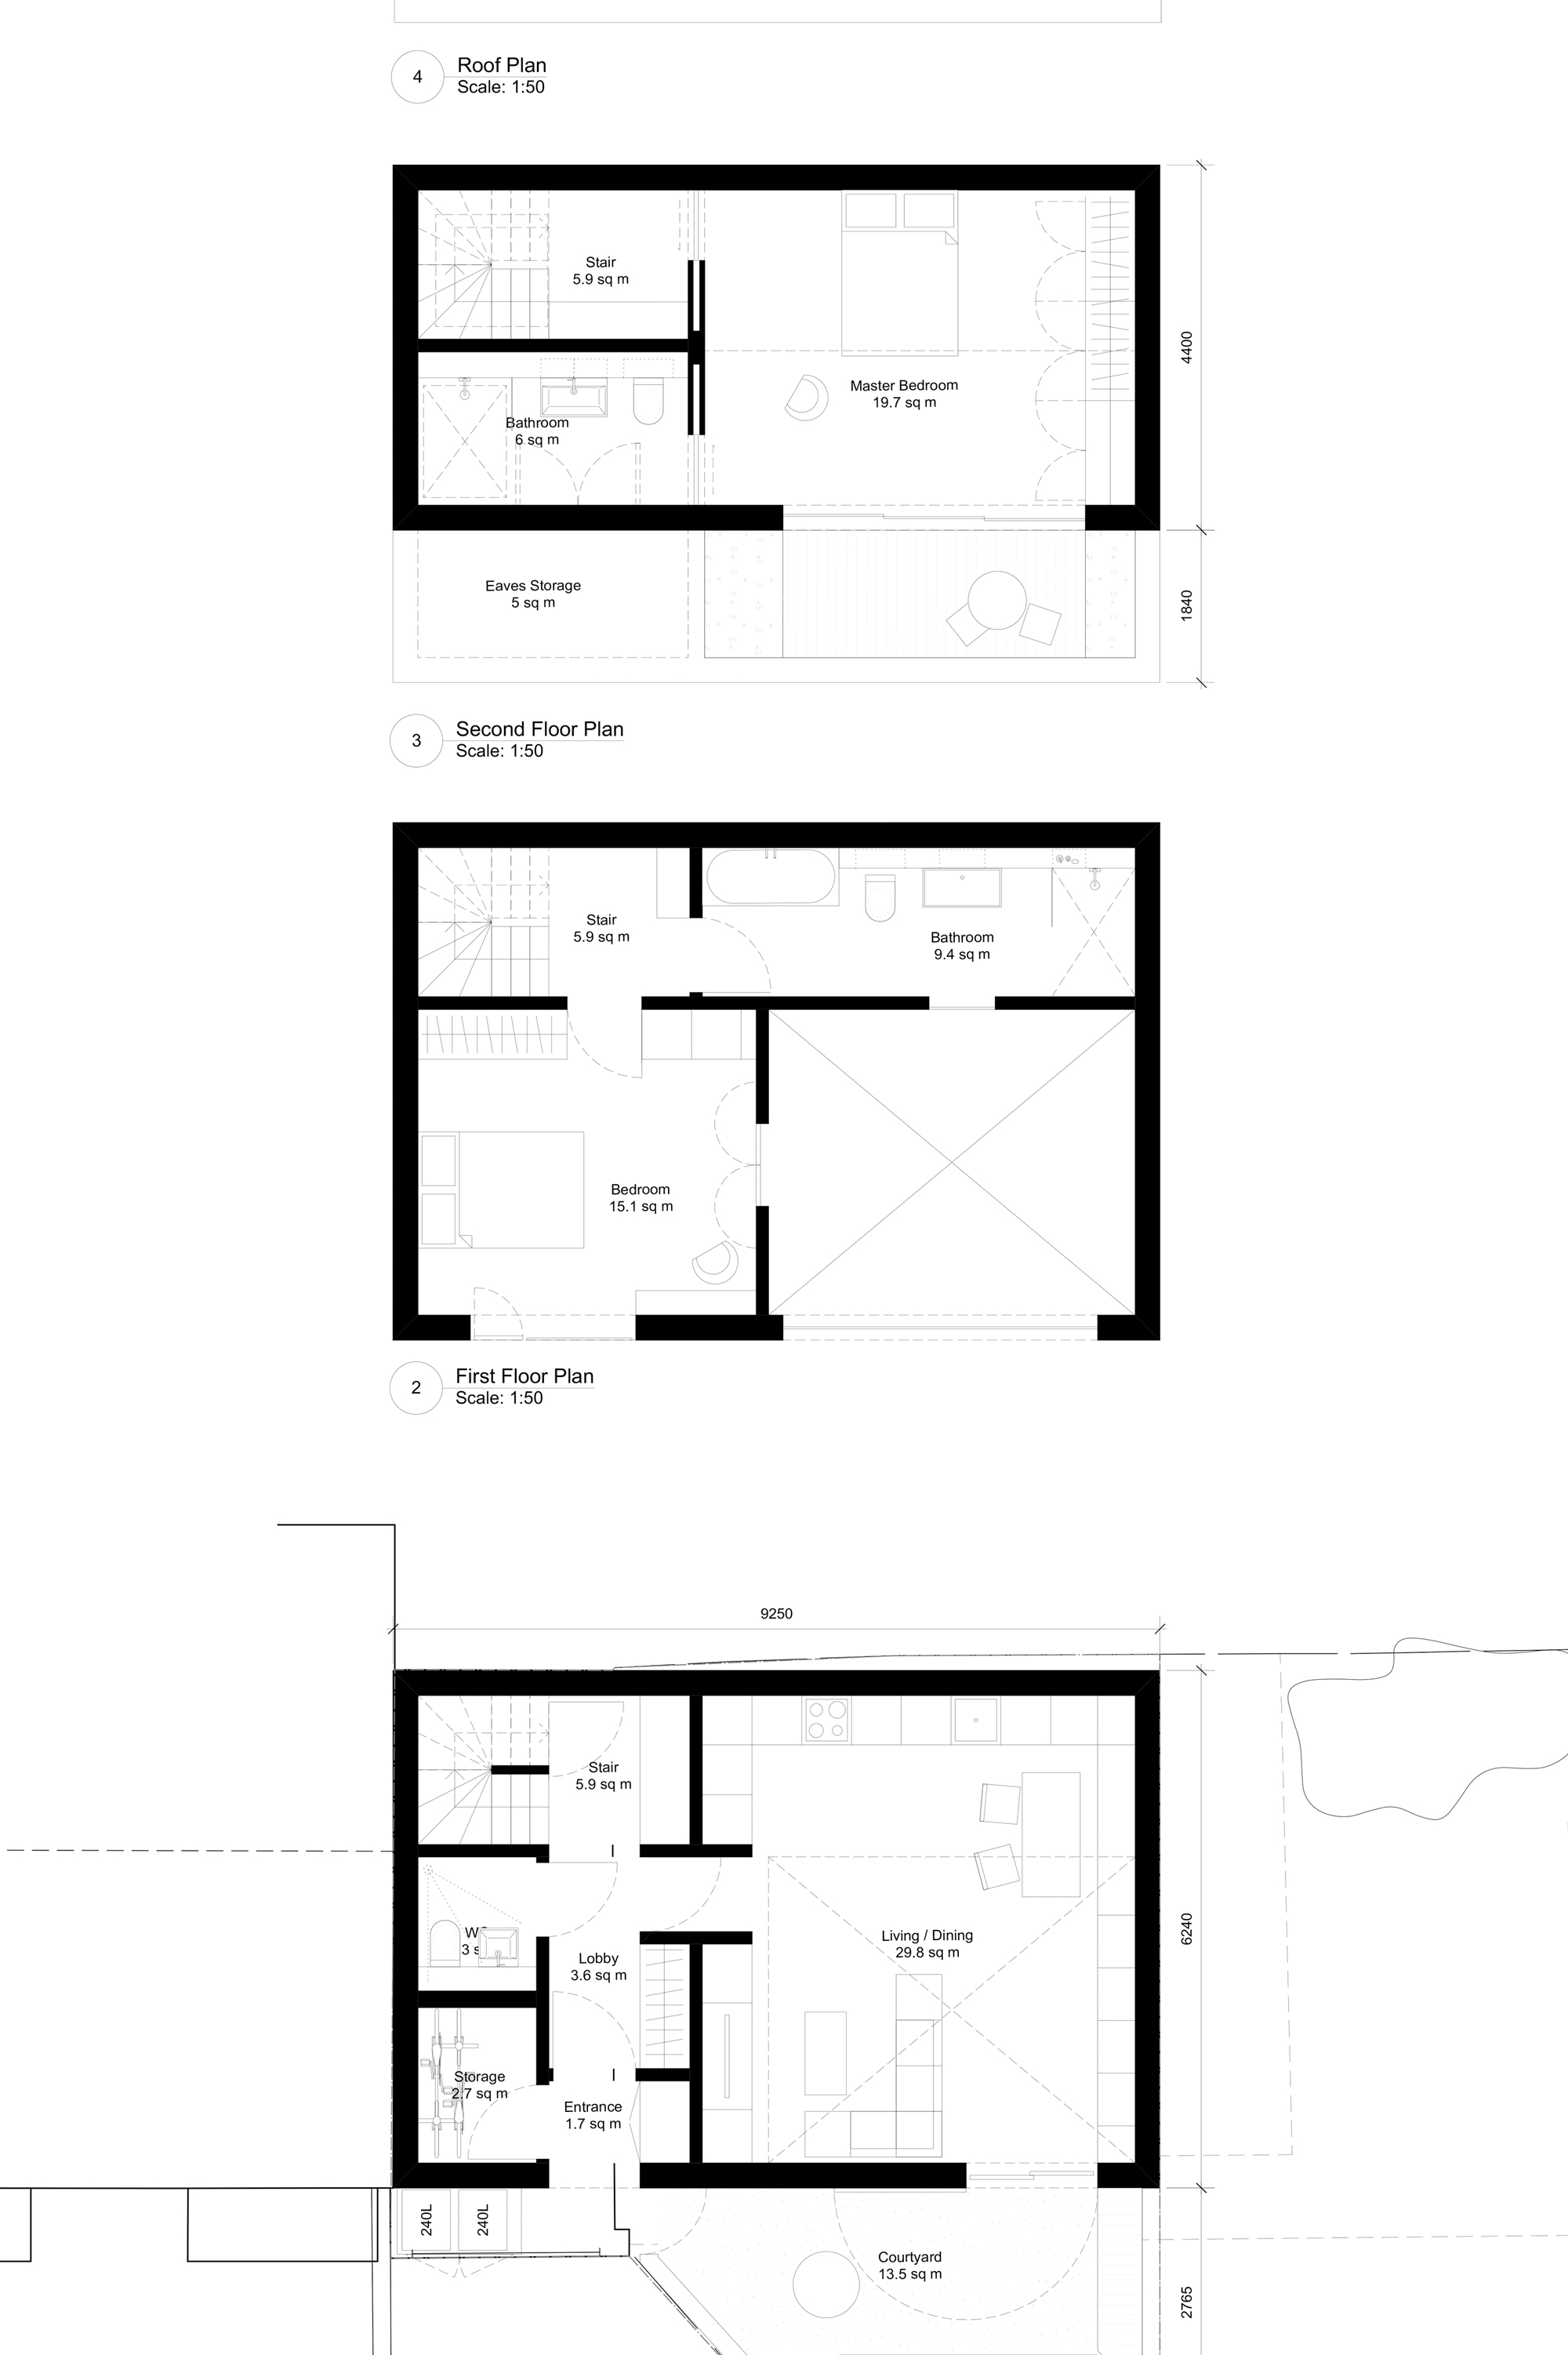 cube-haus-carl-turner-peckham-se15-cs-2000×1332-05-Floorplan